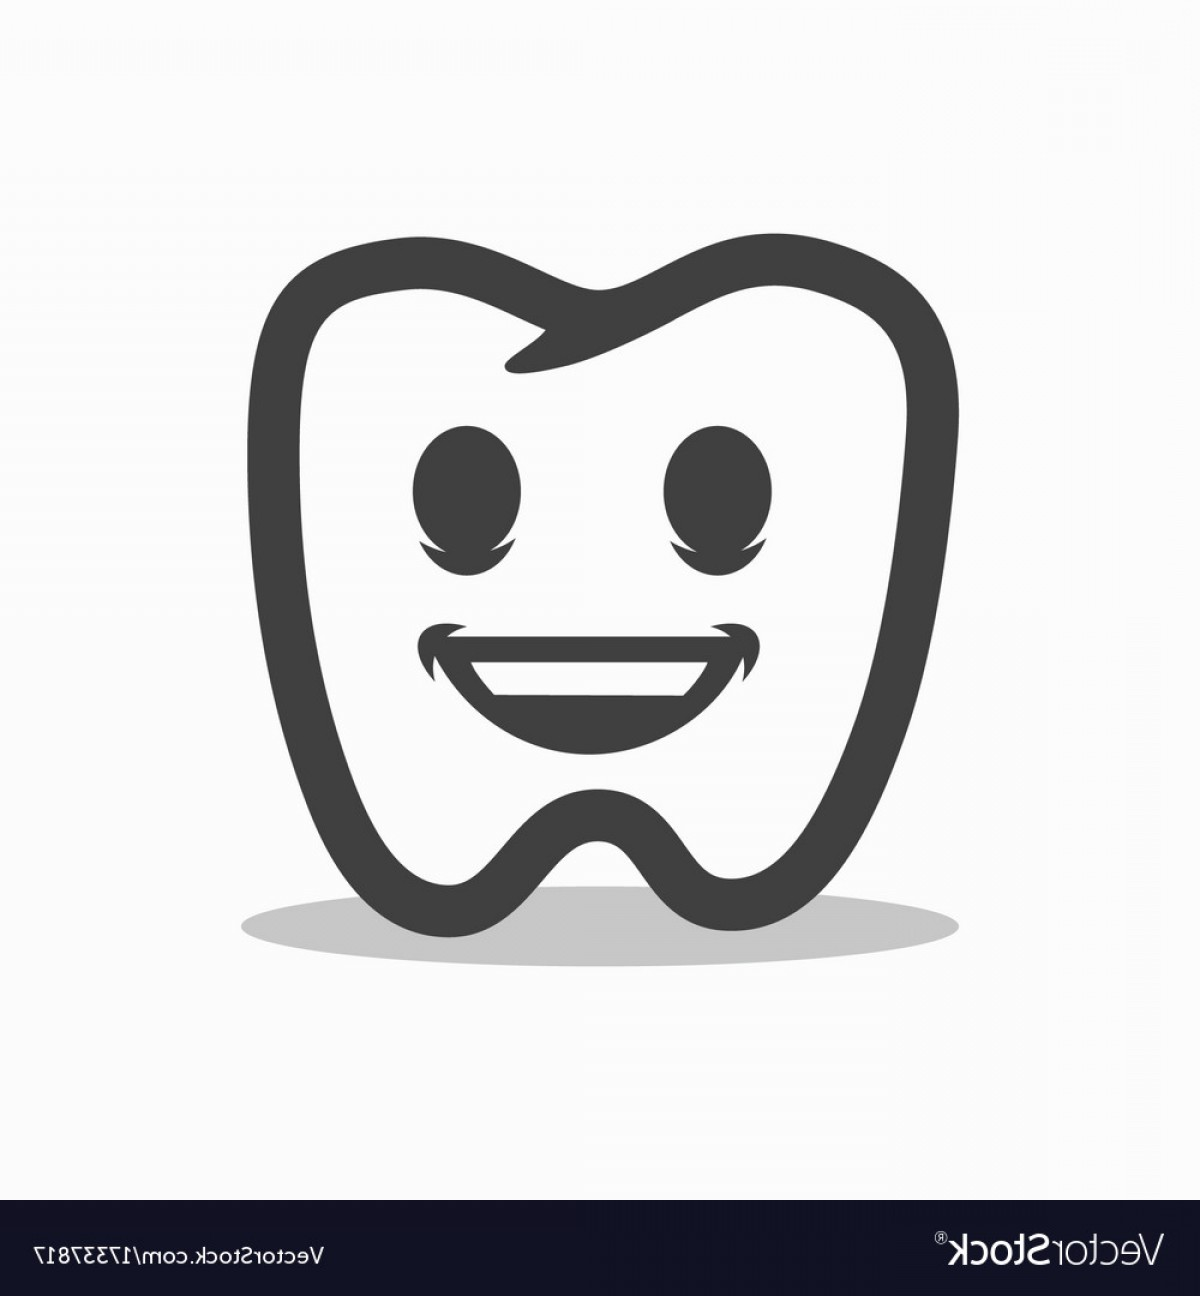 Tooth Outline Vector: Smiling Outline Tooth Icon Modern Design Vector